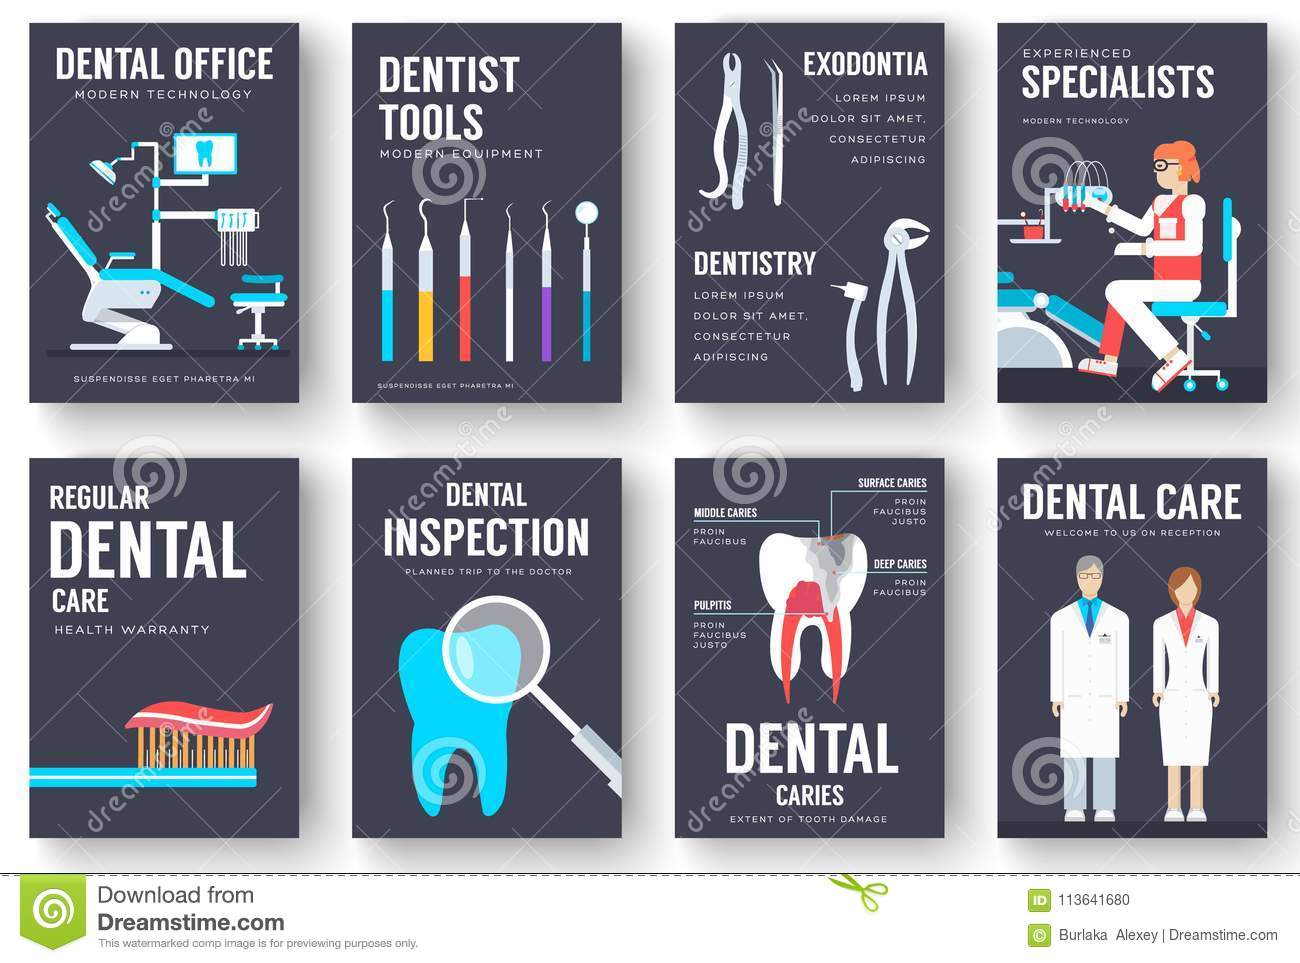 Dental office interior information cards set. Hygiene template of flyear, magazines, posters, book cover, banners